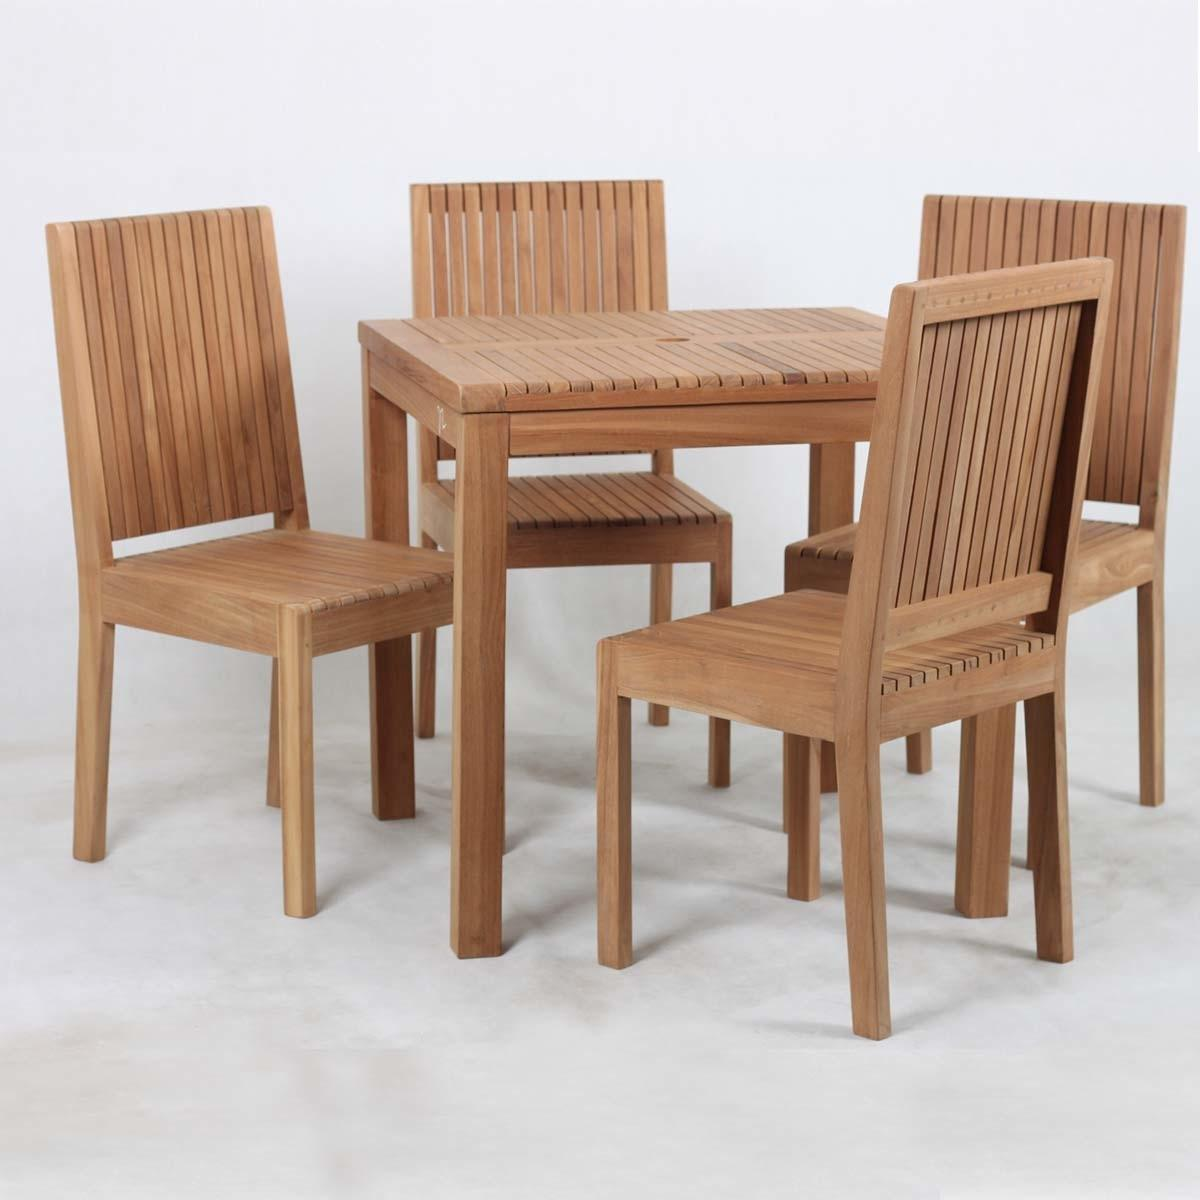 Ottoville Stylish Weather Resistant Teak Wood Outdoor